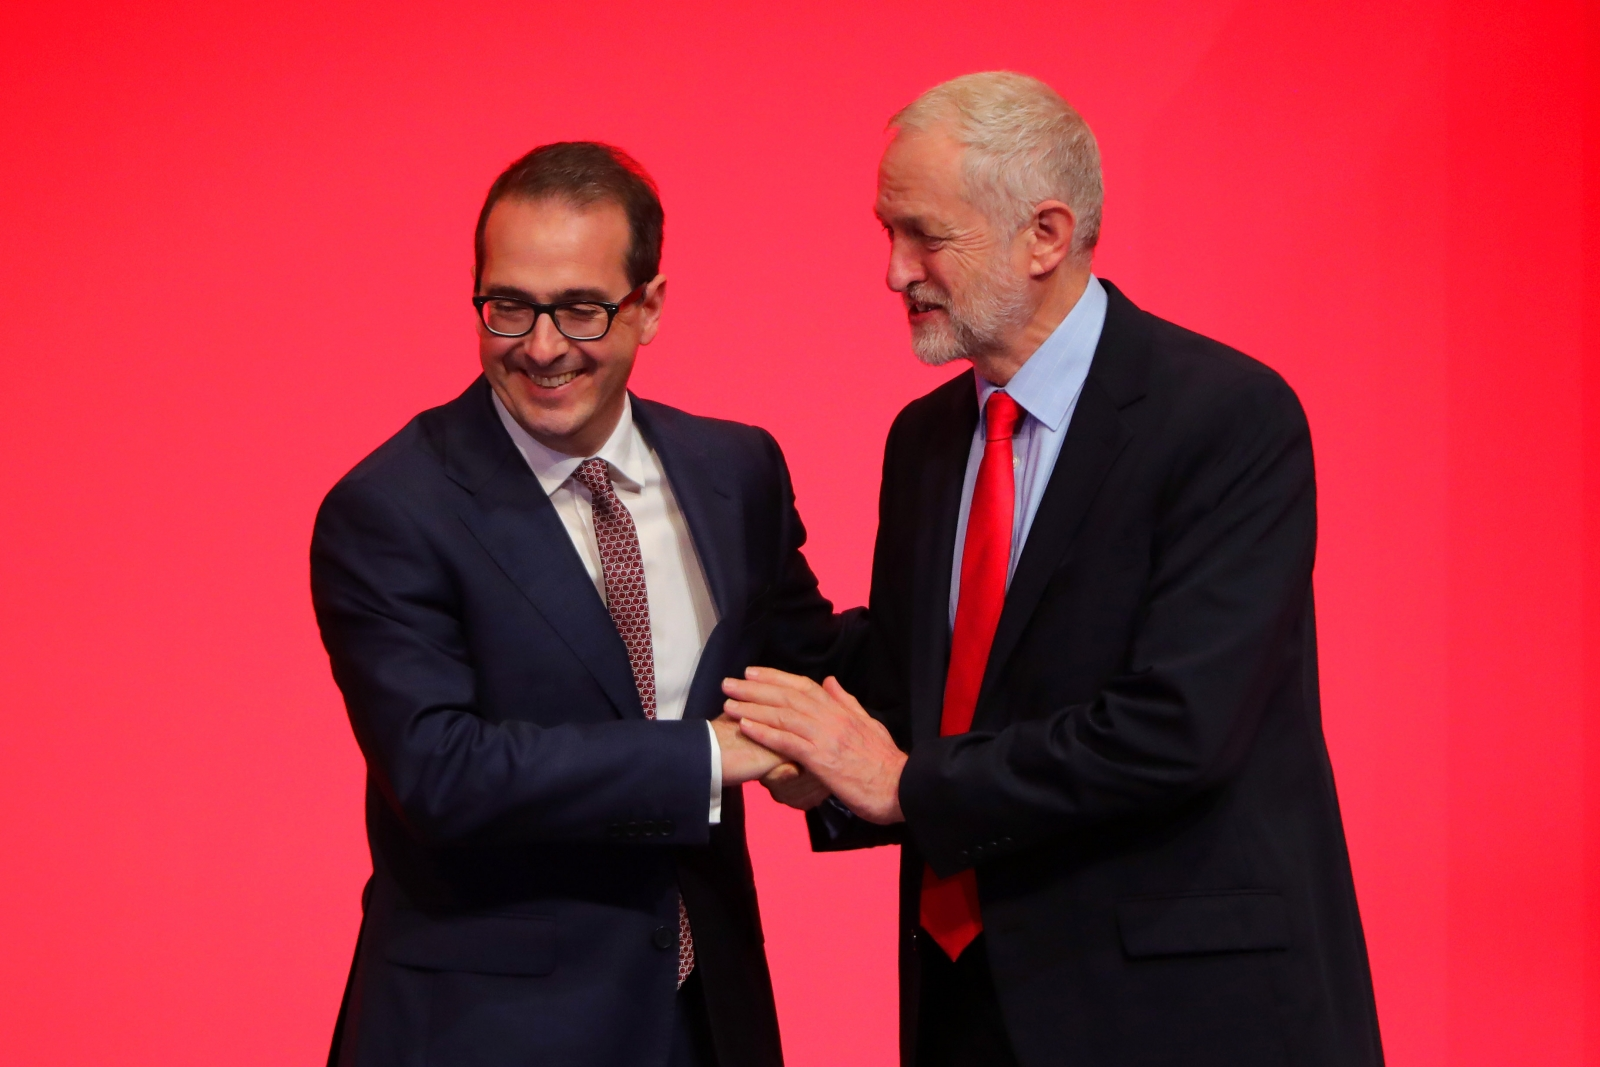 Corbyn and smith